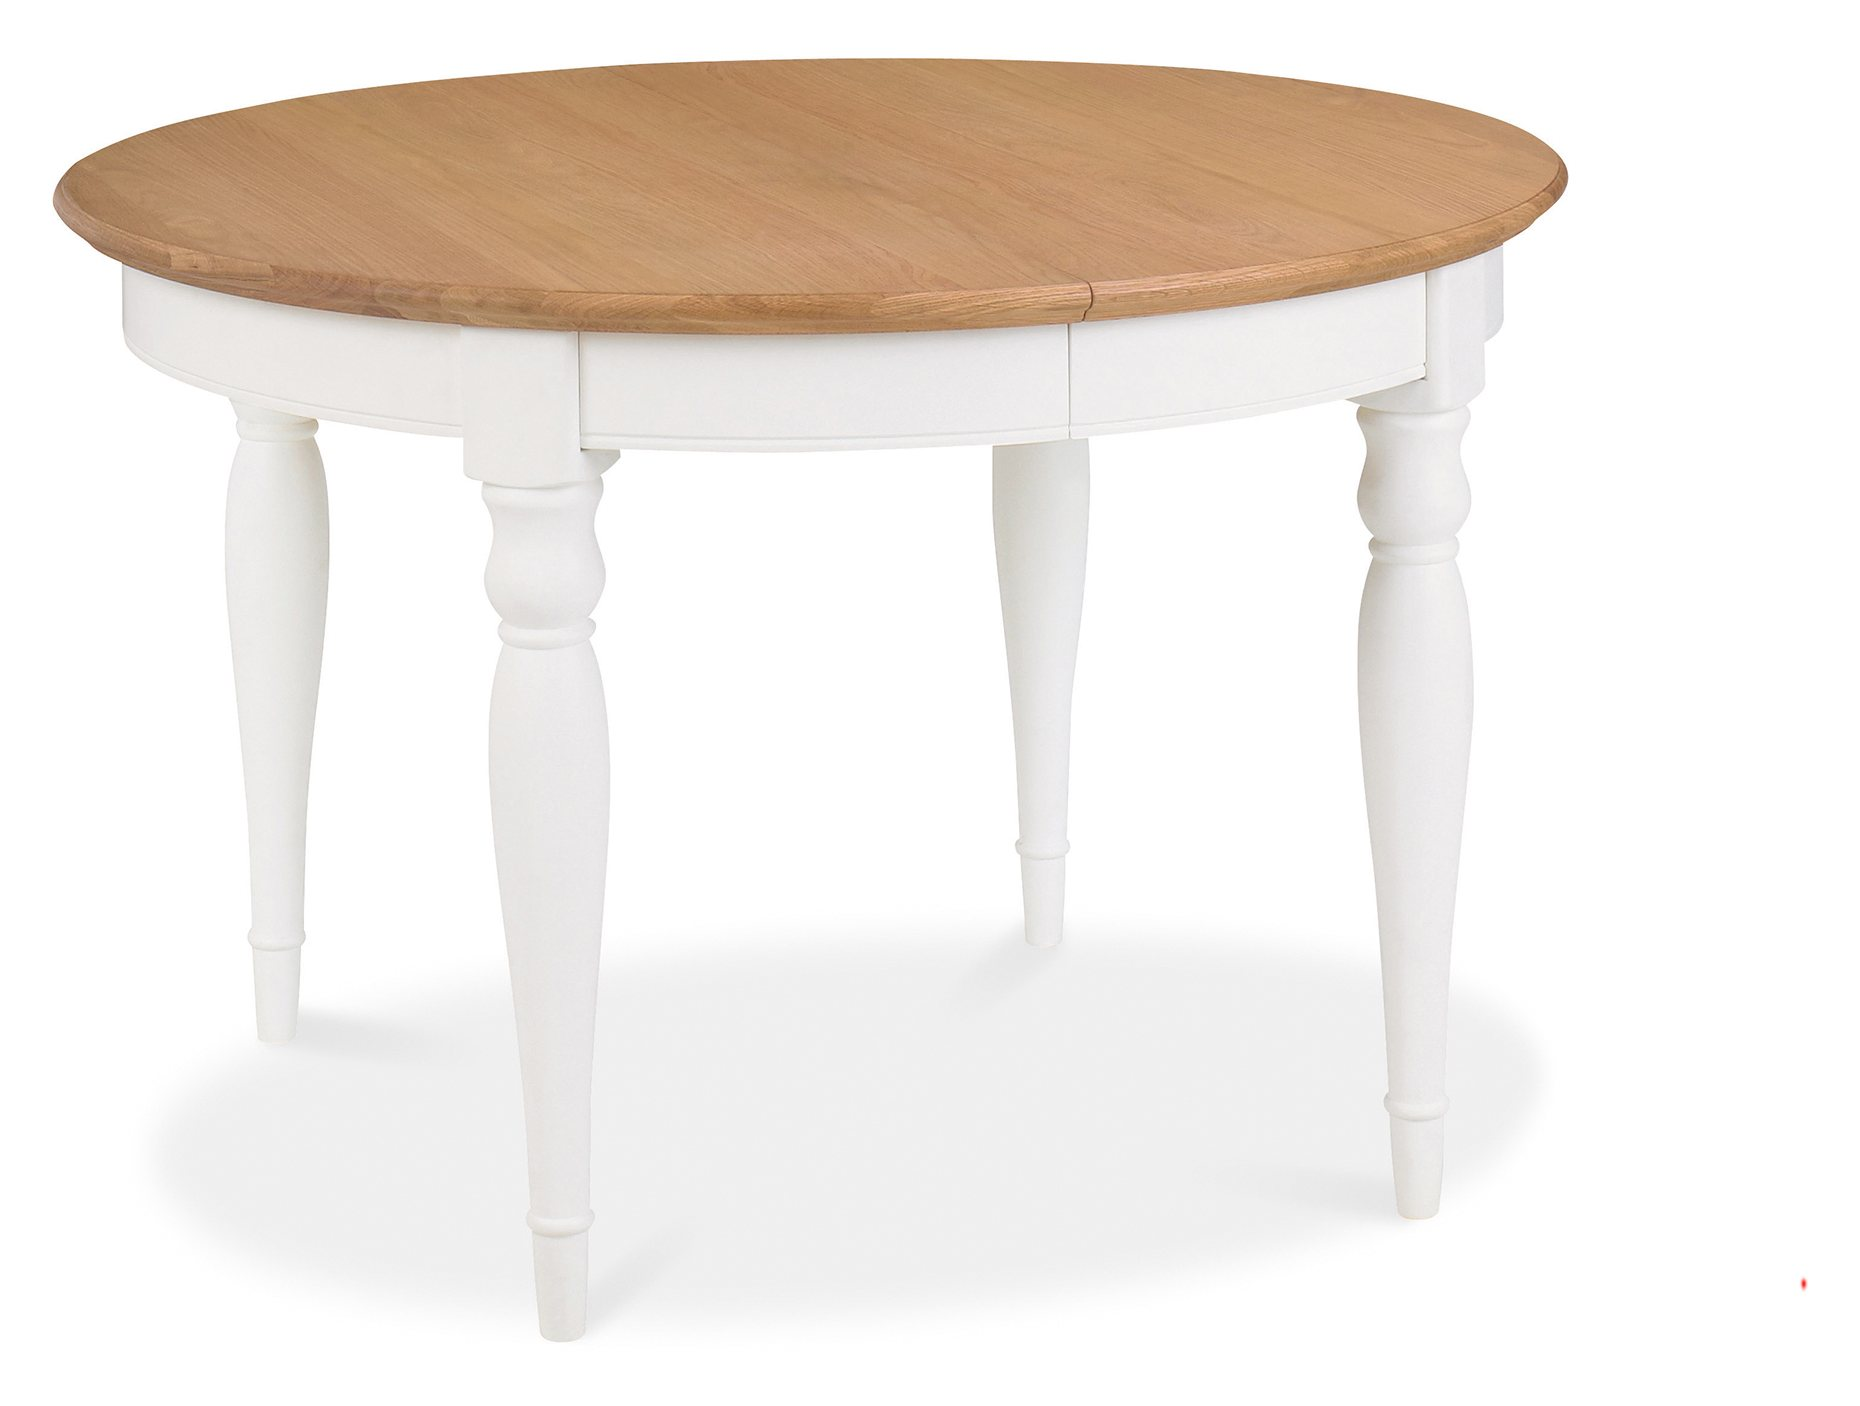 KYRA-TWO-TONE-ROUND-DINING-TABLE-CLOSED-L120cm-x-D120cm